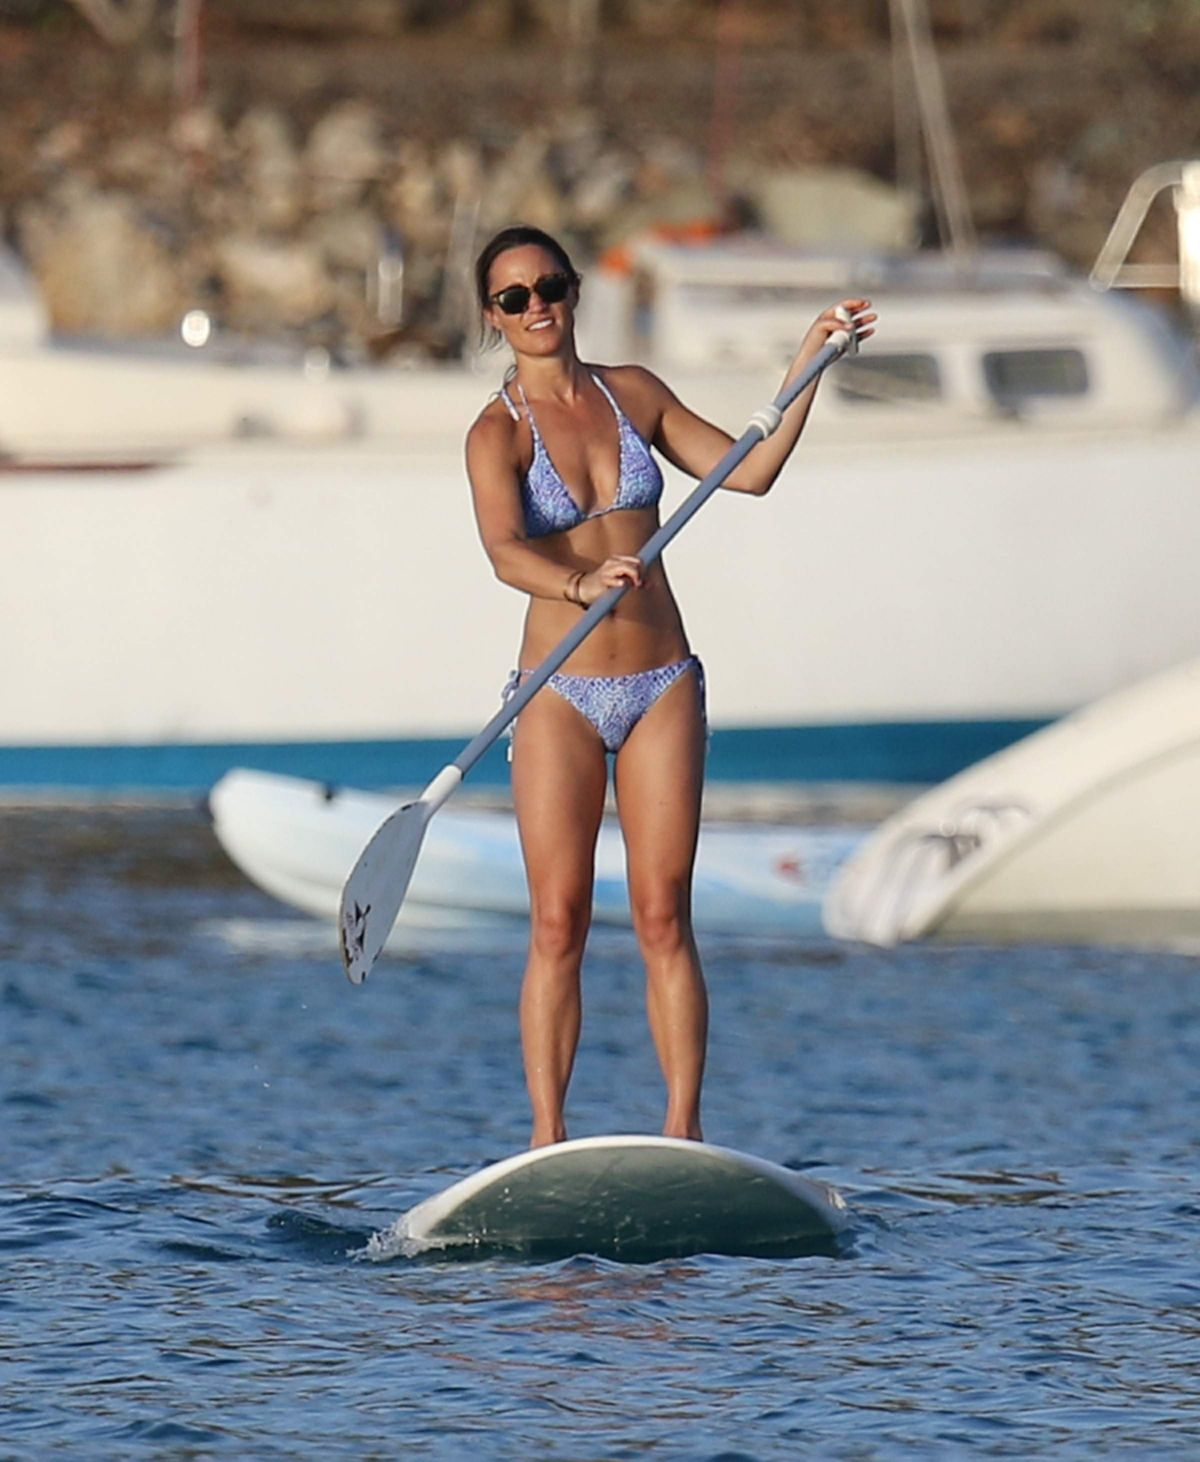 PIPPA MIDDLETON in Bikini Paddleboarding in St. Barths 08/21/2015